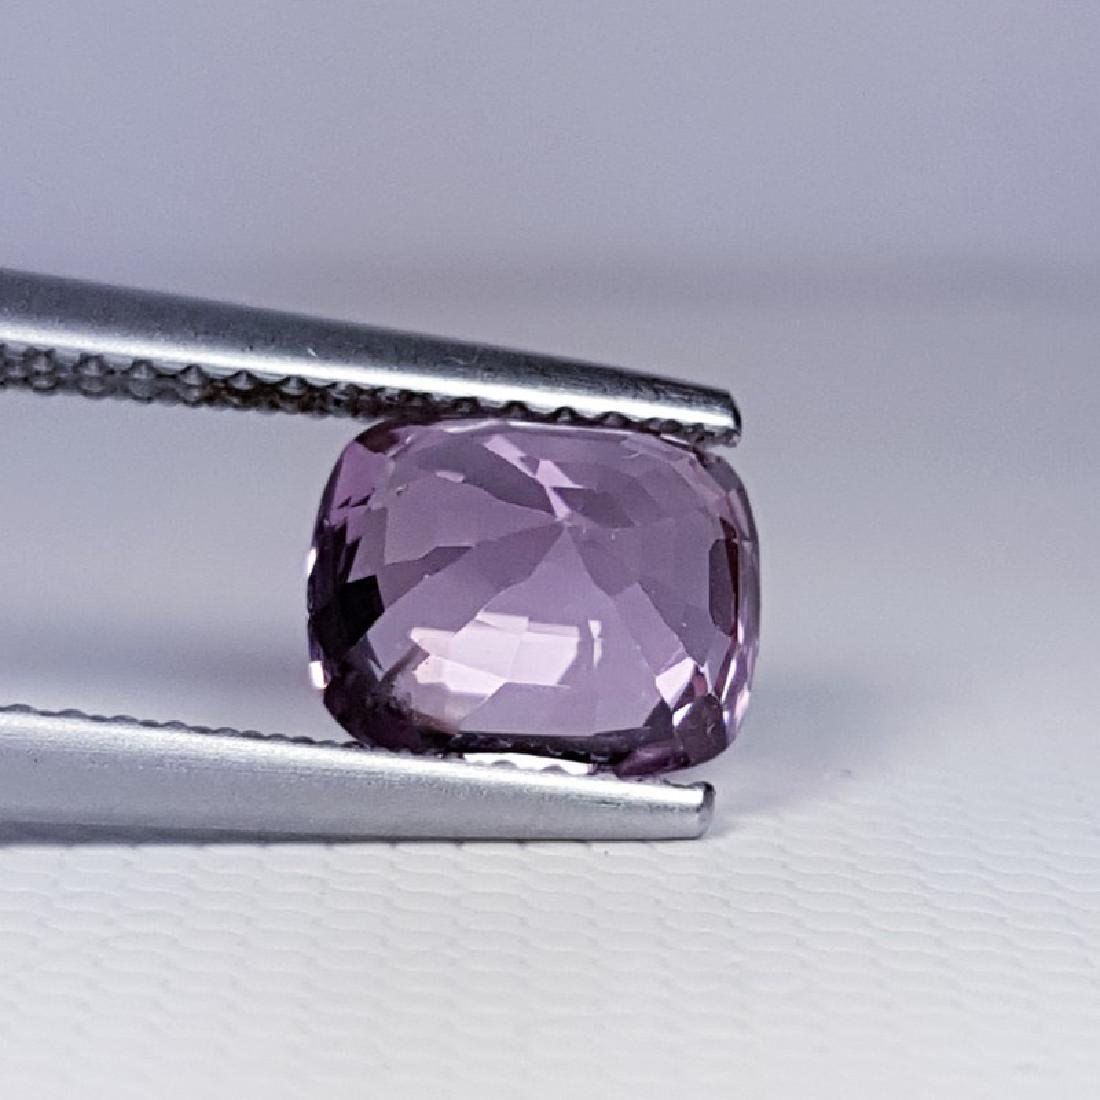 2.10 ct Collective Gem Cushion Cut Natural Spinel - 3